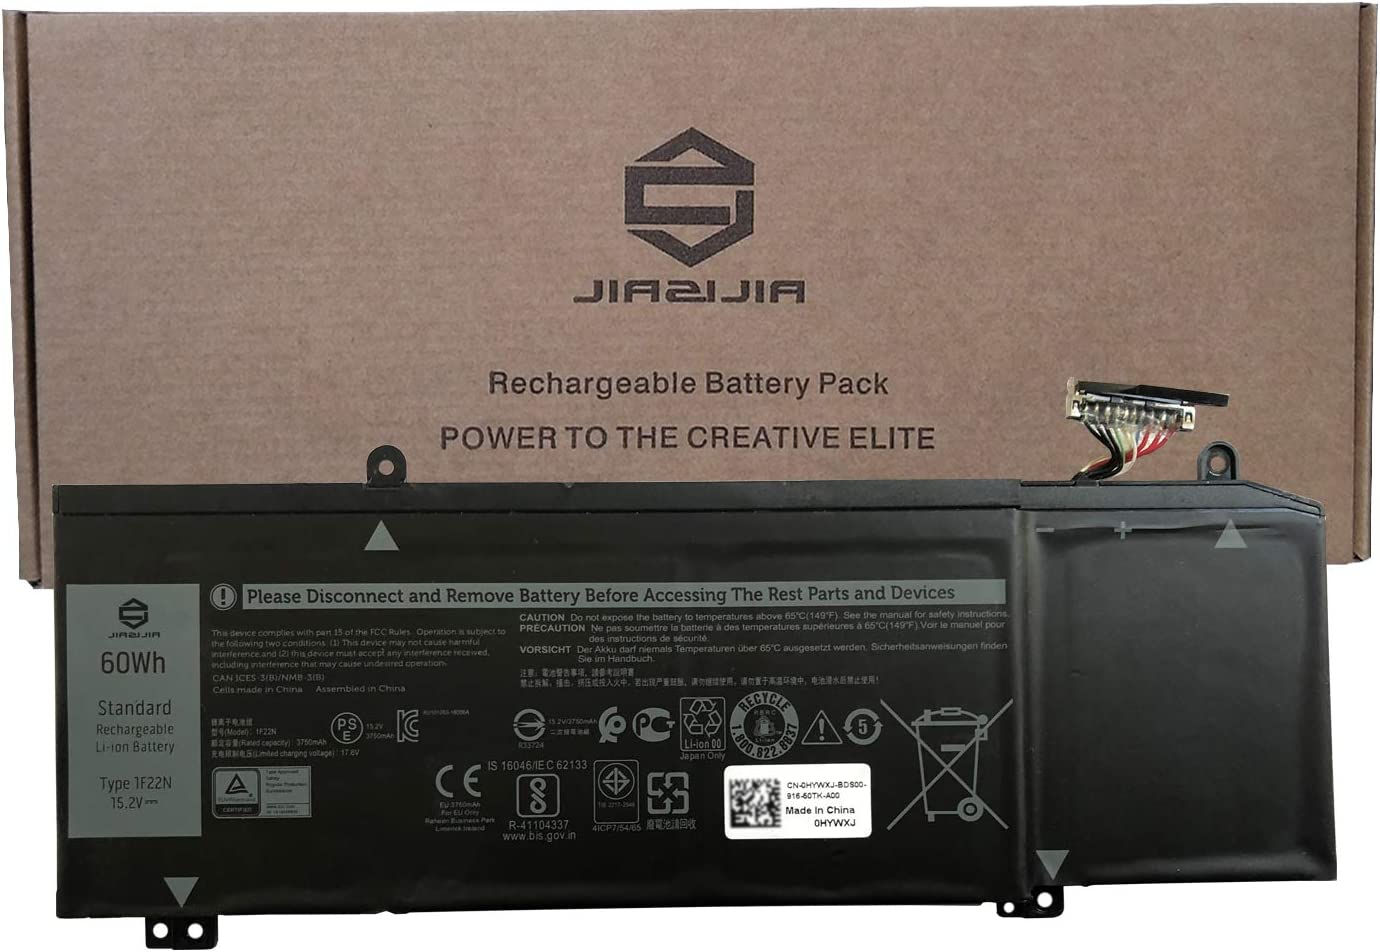 JIAZIJIA 1F22N Laptop Battery Replacement for Dell G5 5590 G7 7590 7790 Alienware M15 2018 ALW15M-D1735R M17 Series Notebook 08622M 8622M 0HYWXJ HYWXJ 0JJPFK JJPFK Black 15.2V 60Wh 3750mAh